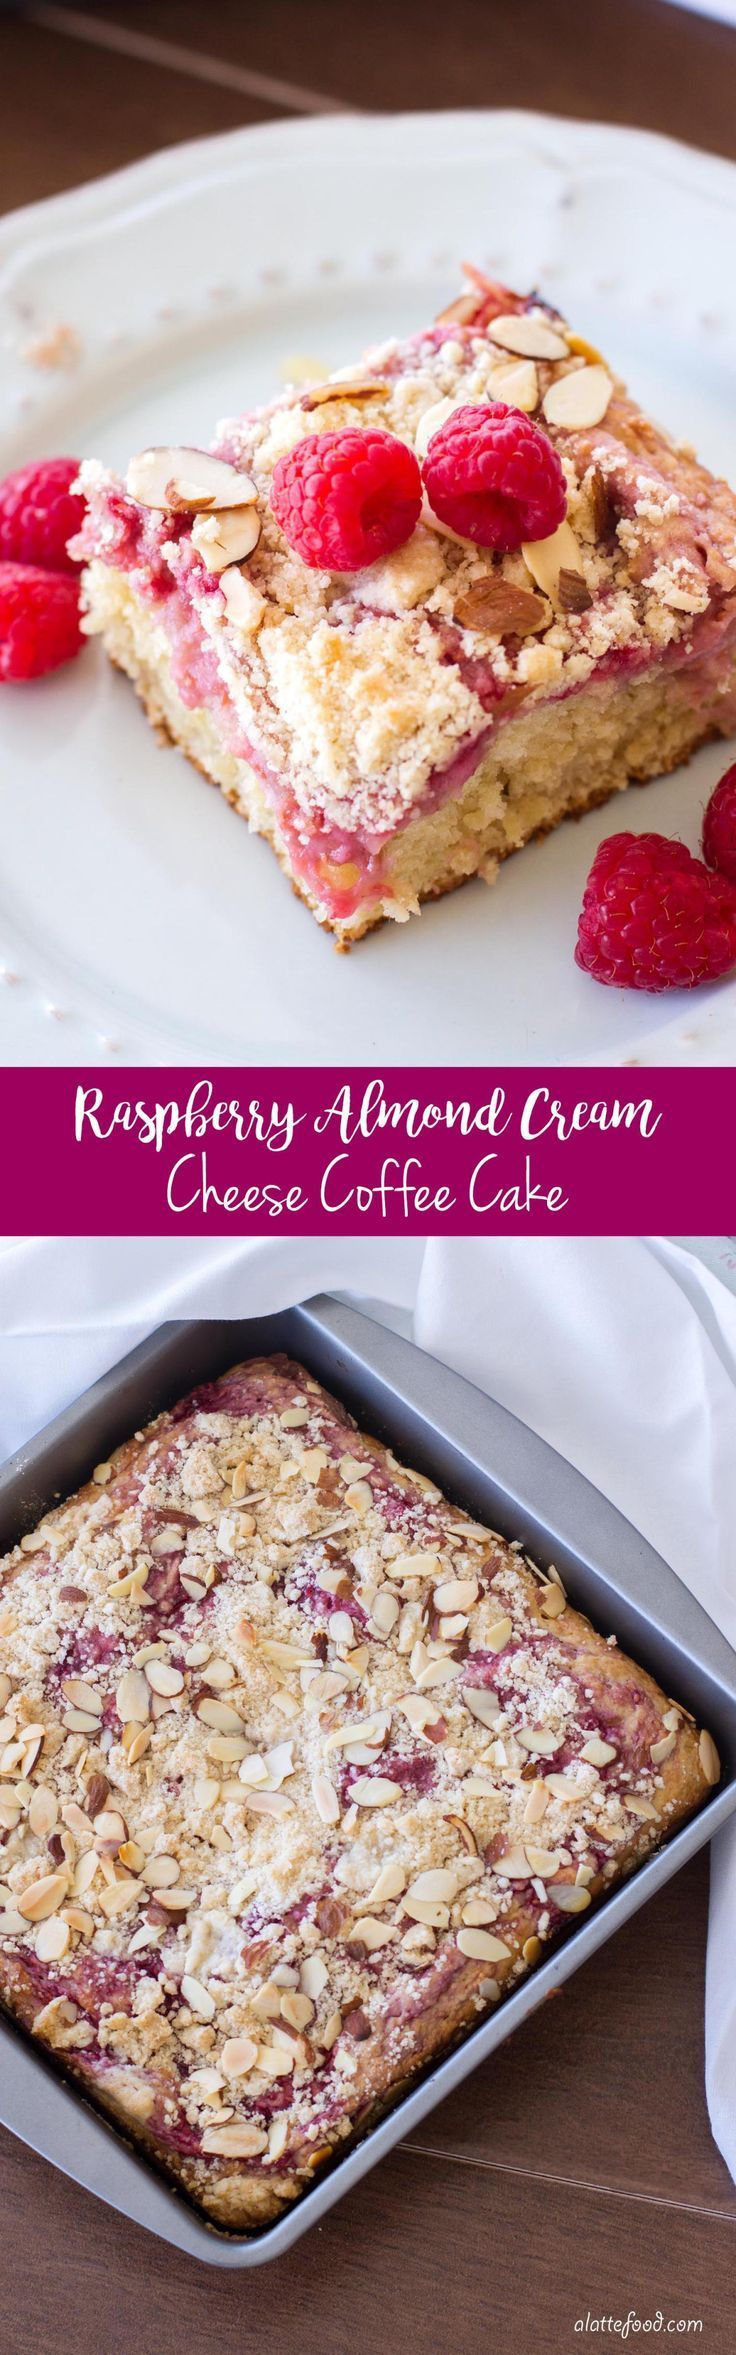 This easy raspberry coffee cake recipe is swirled with raspberries and cream cheese, has a sweet crumb topping, and is sprinkled with sliced almonds!